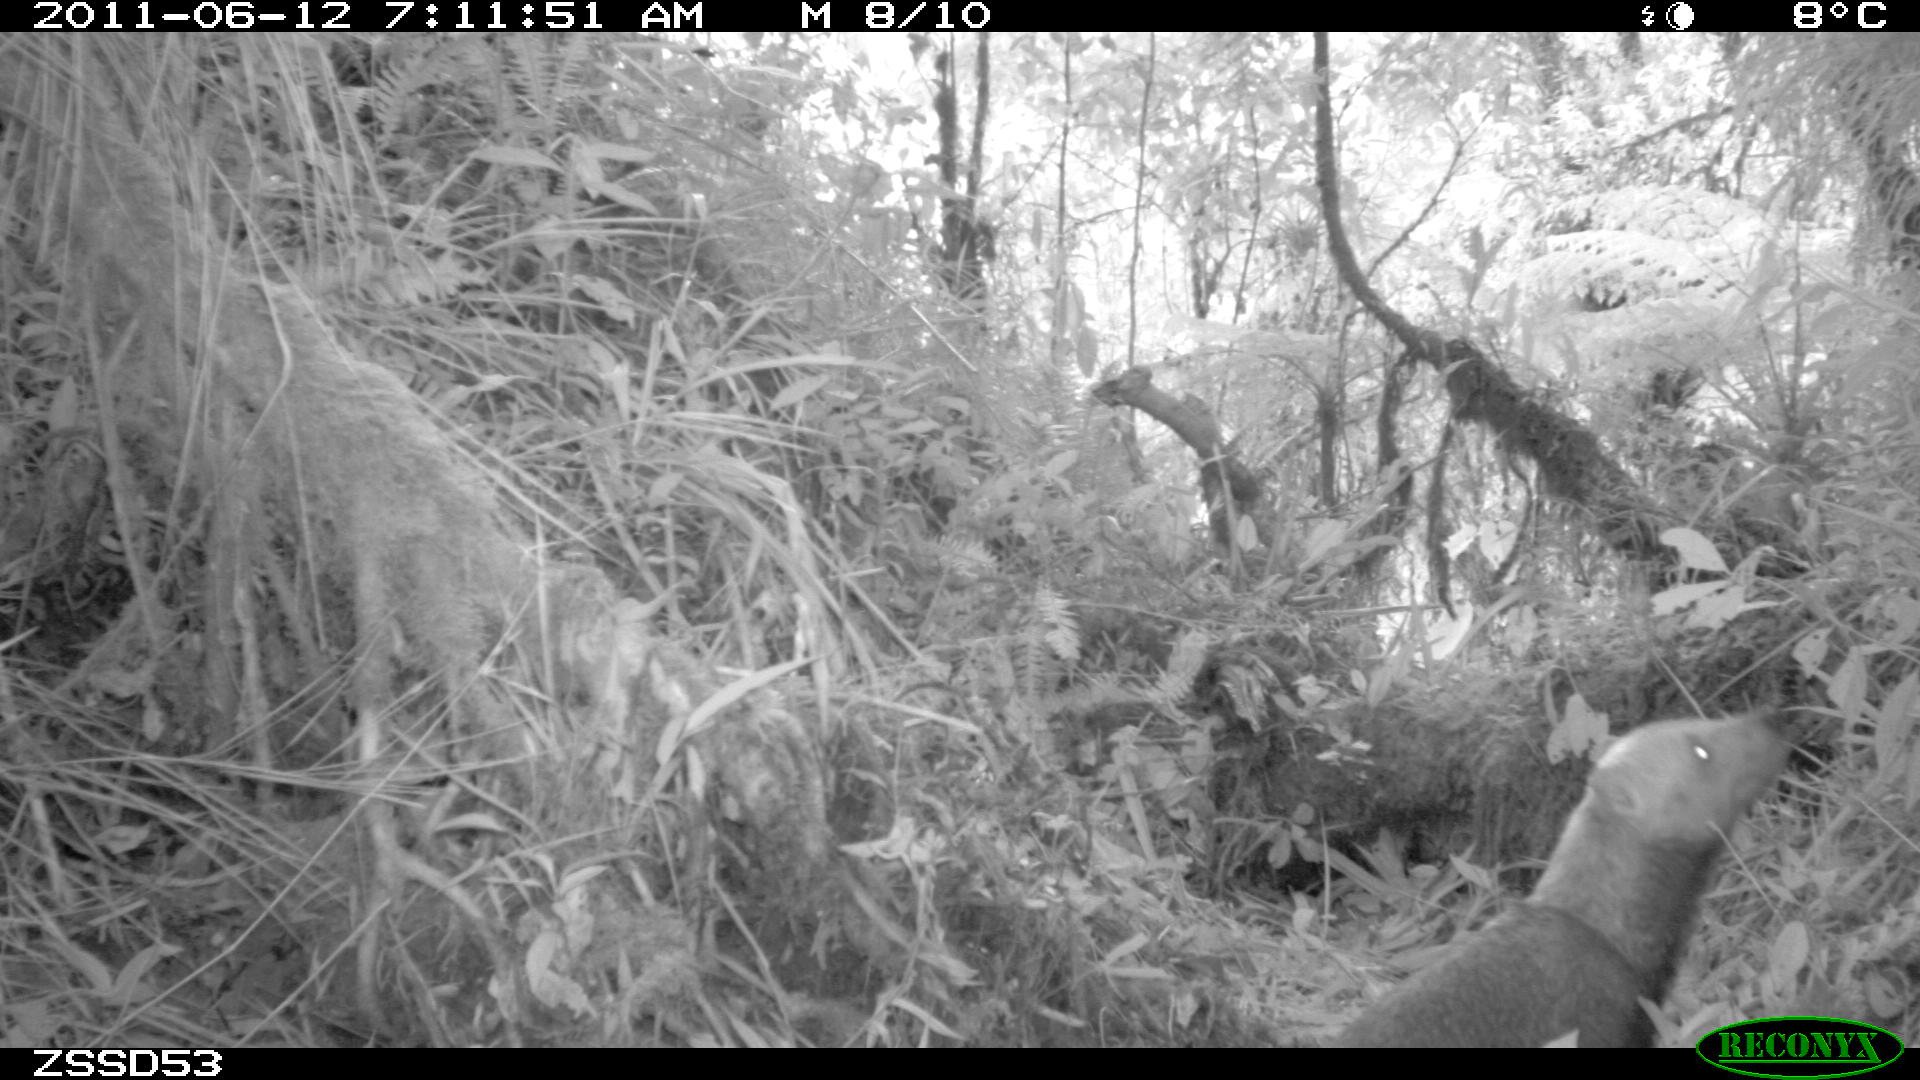 A camera trap photo of a bush dog in the cloud forest at an elevation of 2130m (6988').